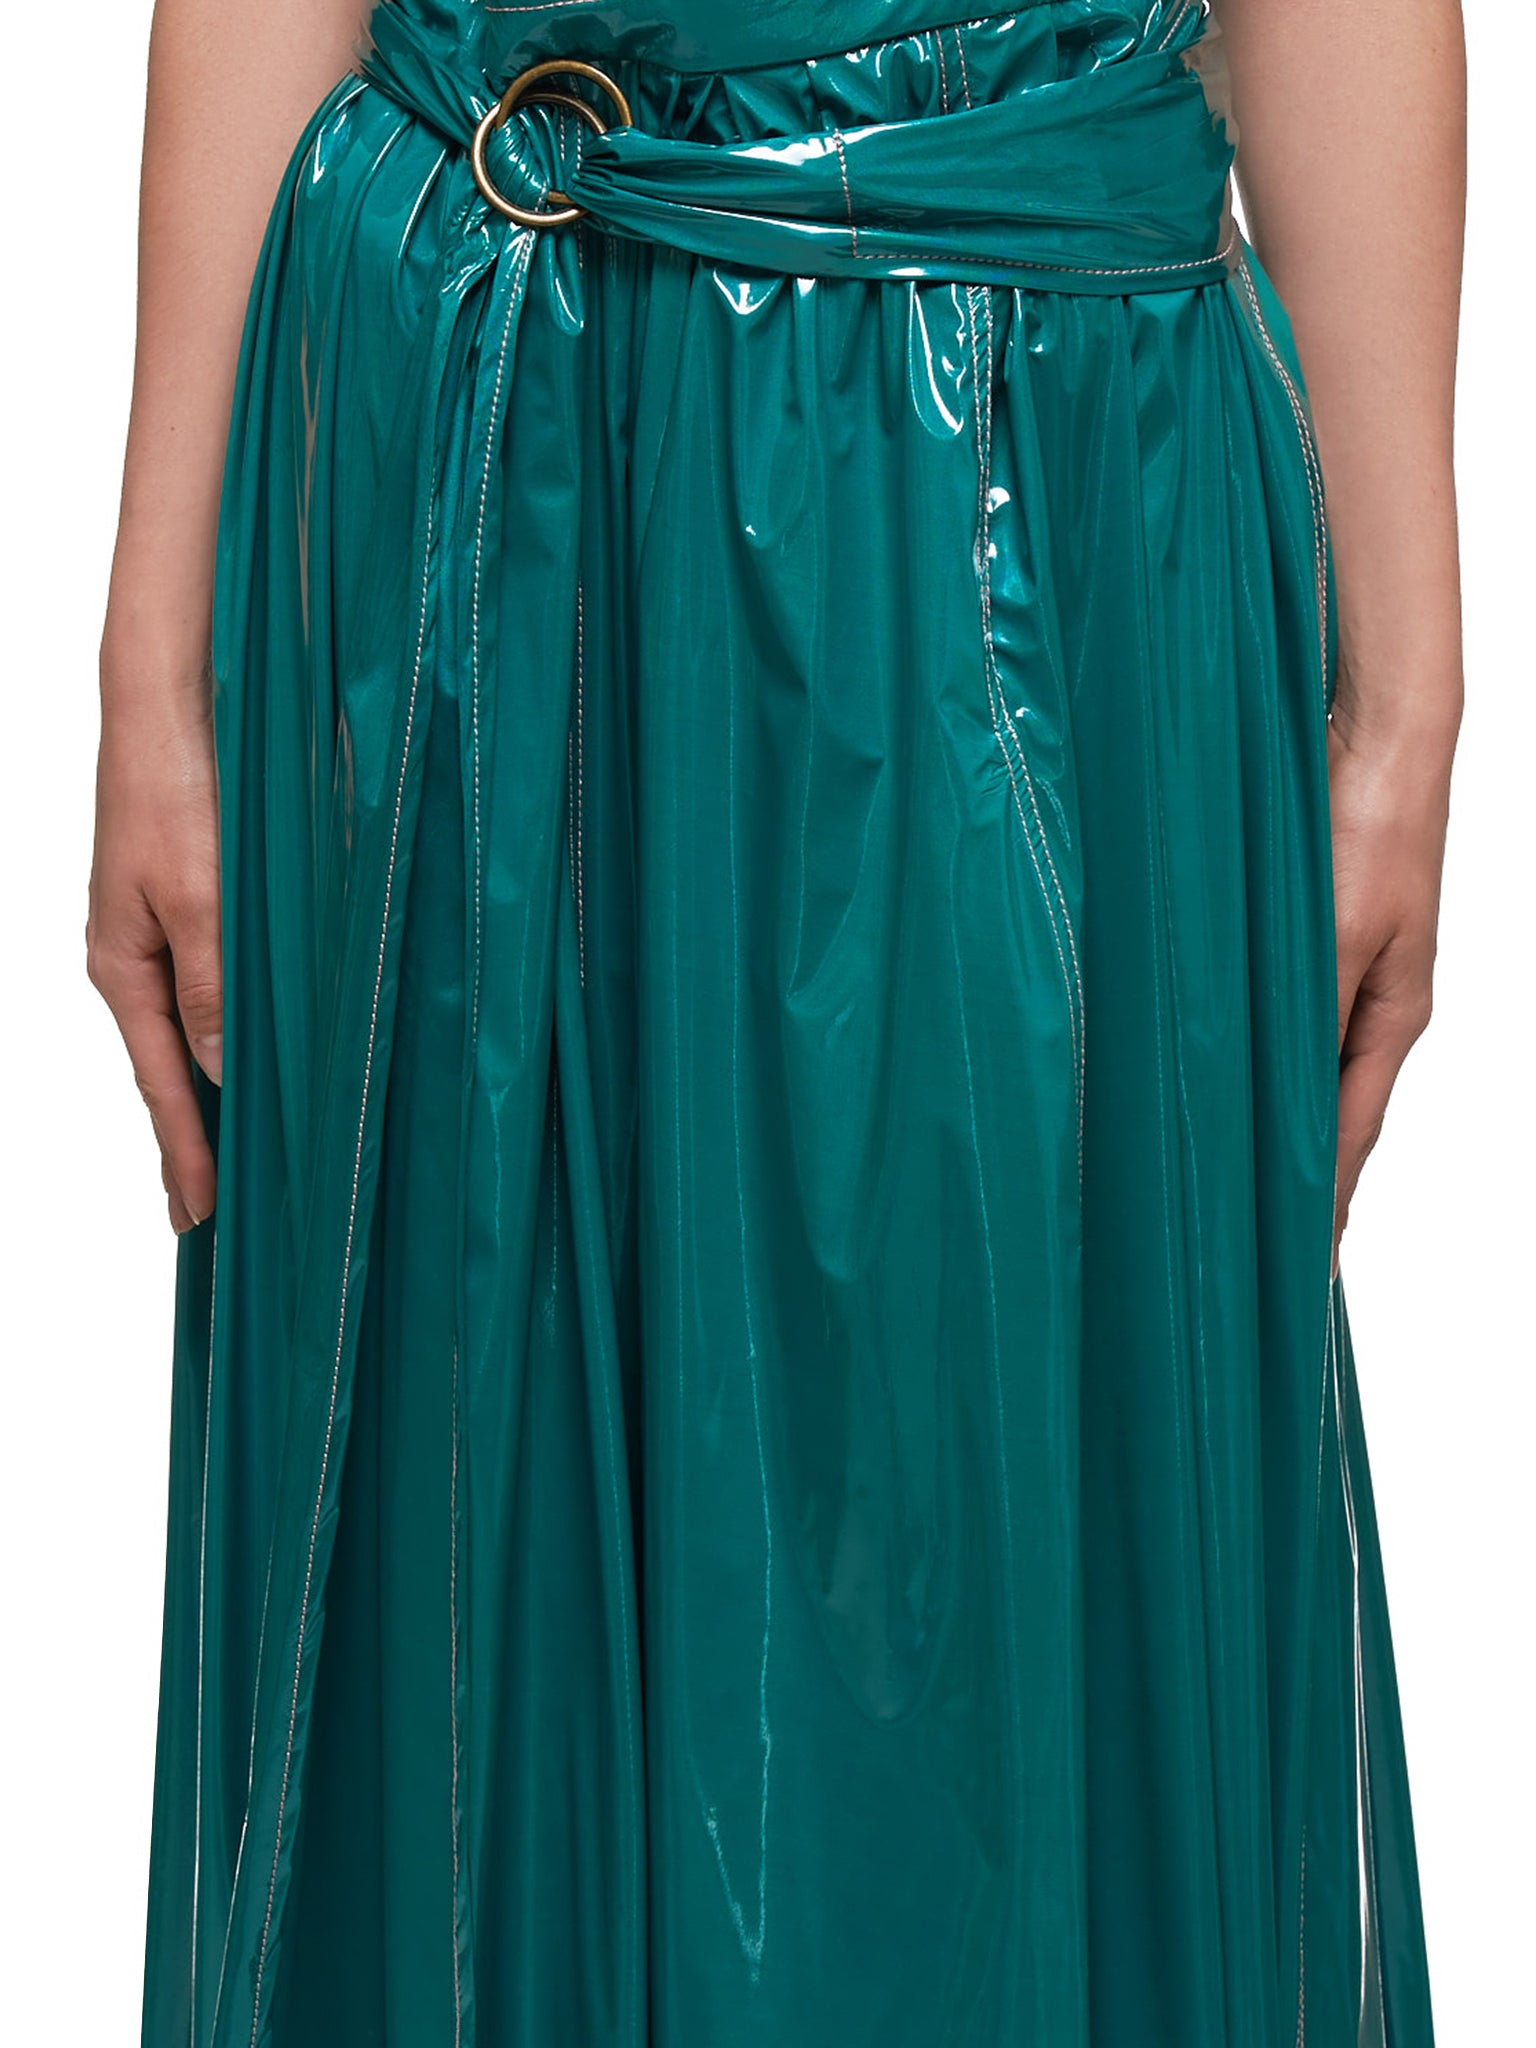 Gloss Coated Amalia Jersey Skirt (16GS7045-EMERALD)